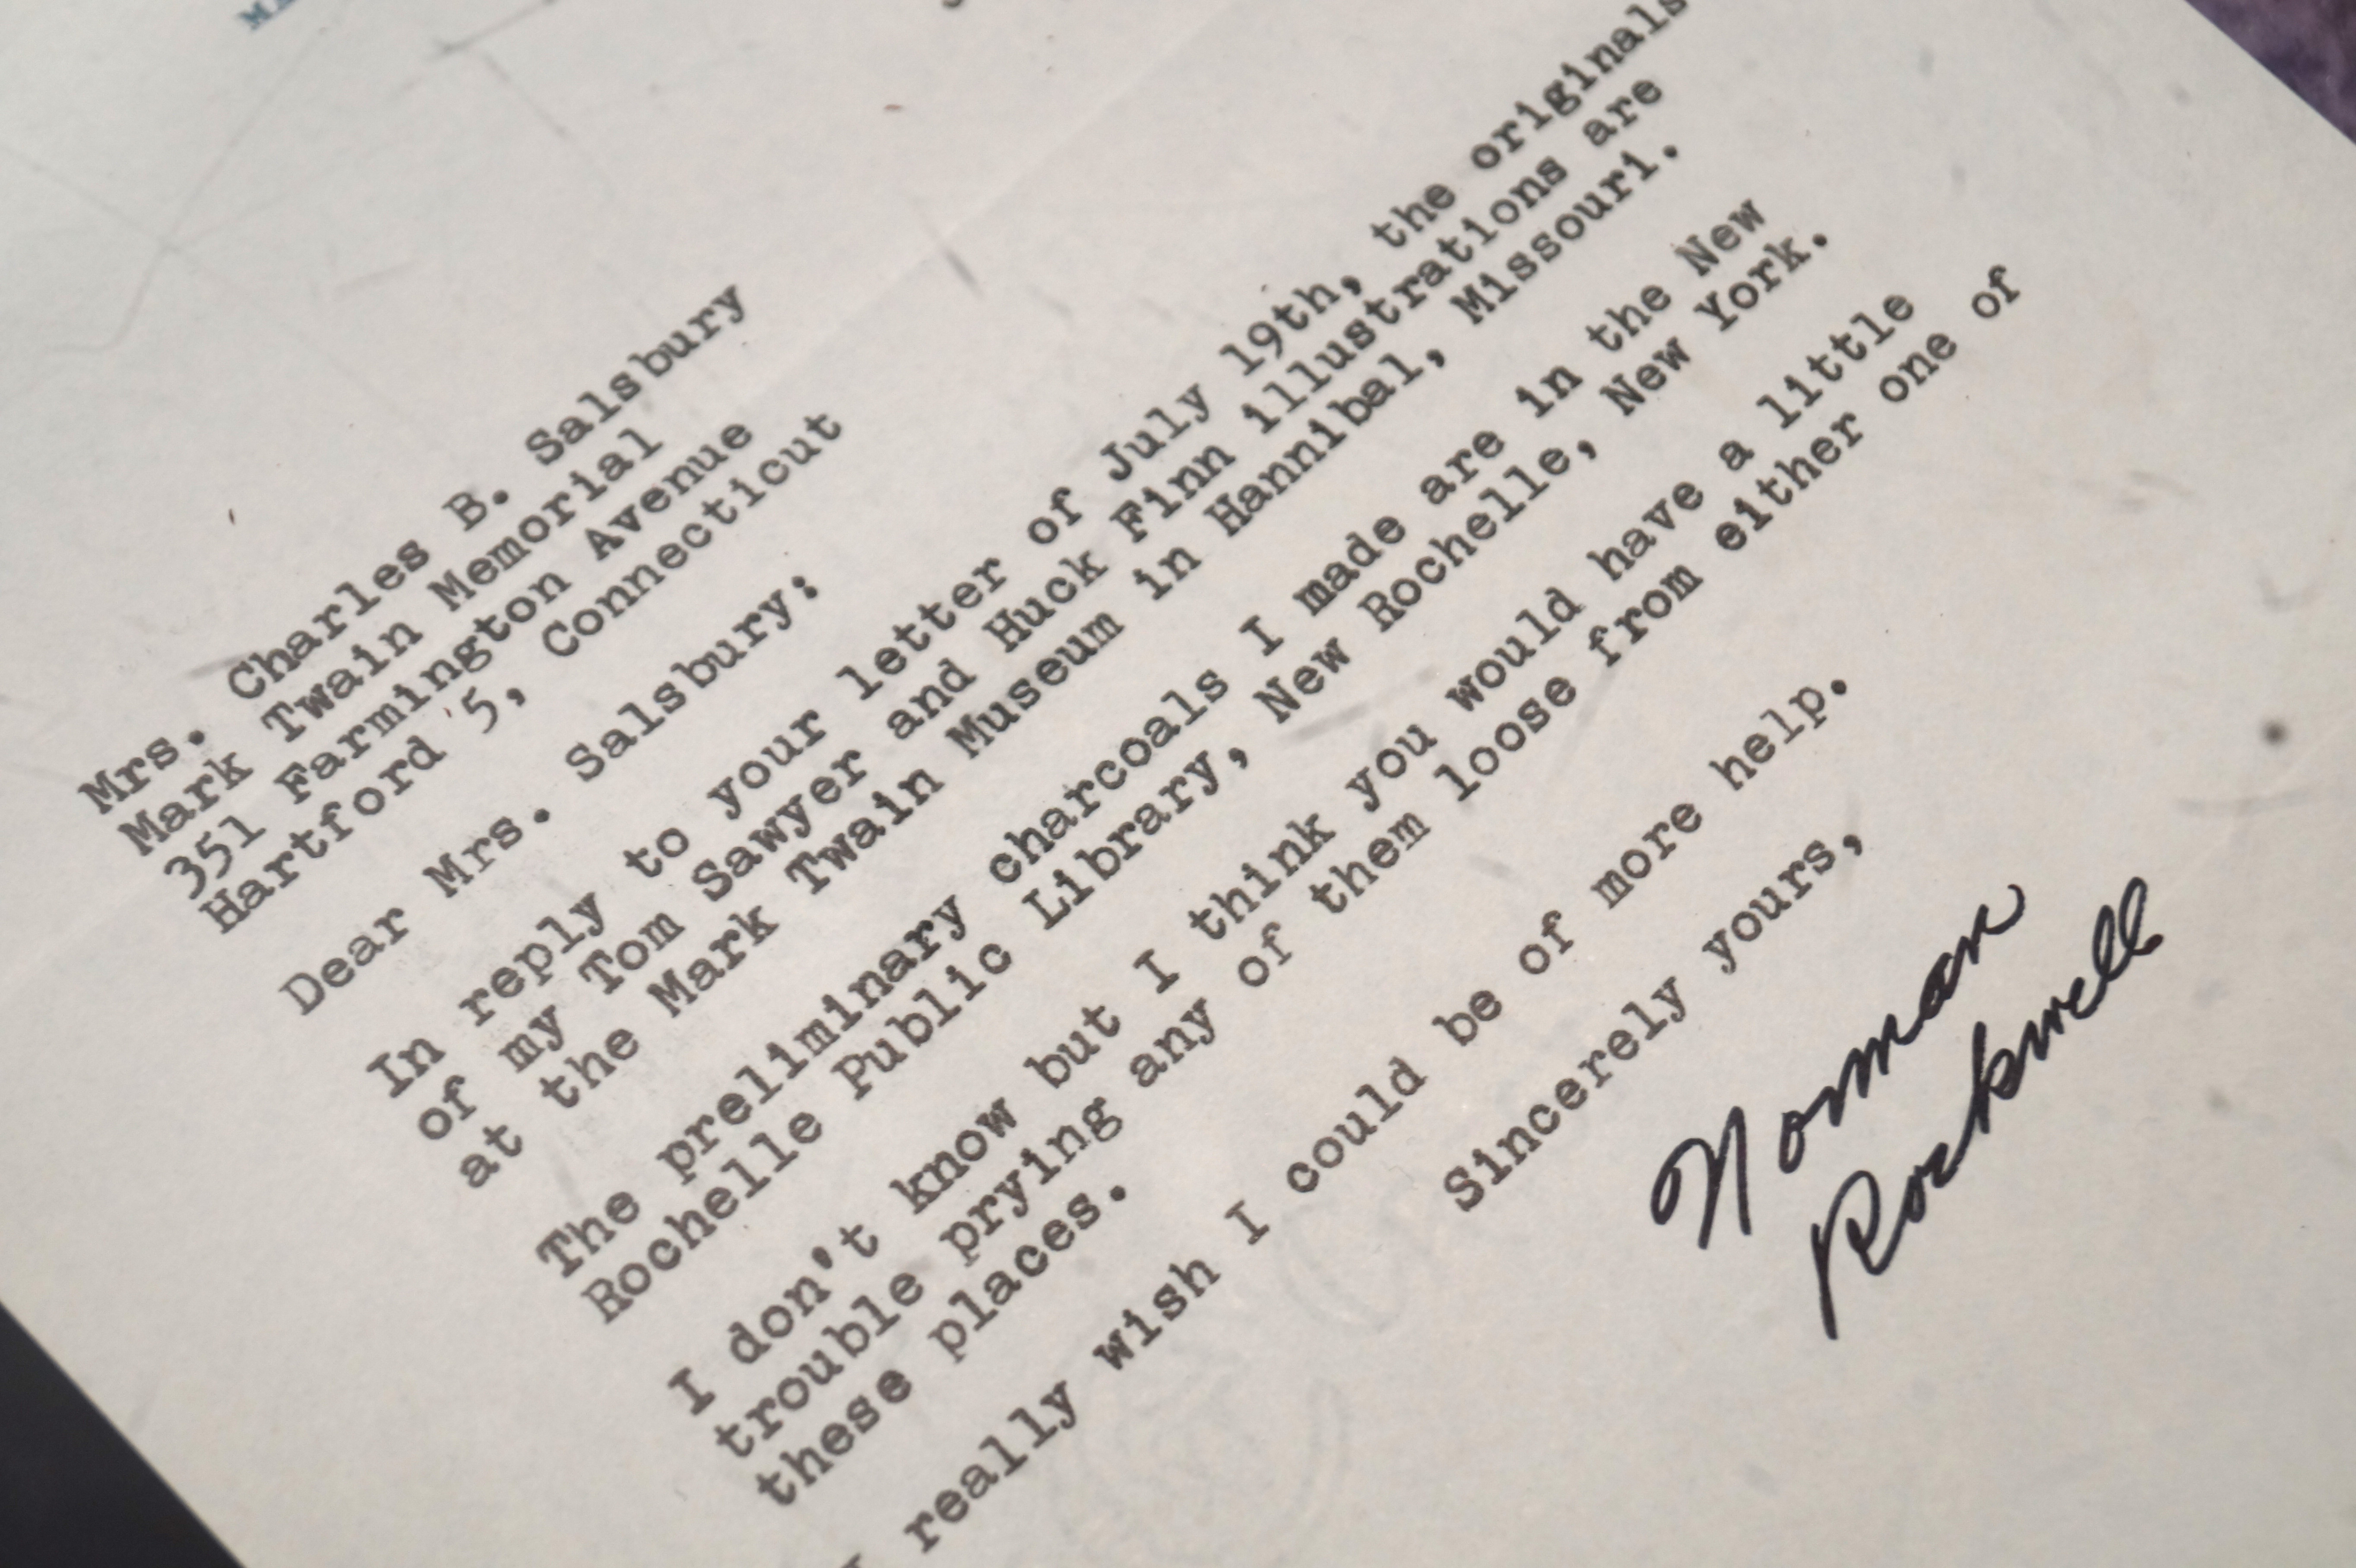 In 1967 Edith Salsbury wrote a letter to famed American illustrator Norman Rockwell inquiring about his original illustrations for The Adventures of Tom Sawyer and Adventures of Hucklebury Finn.